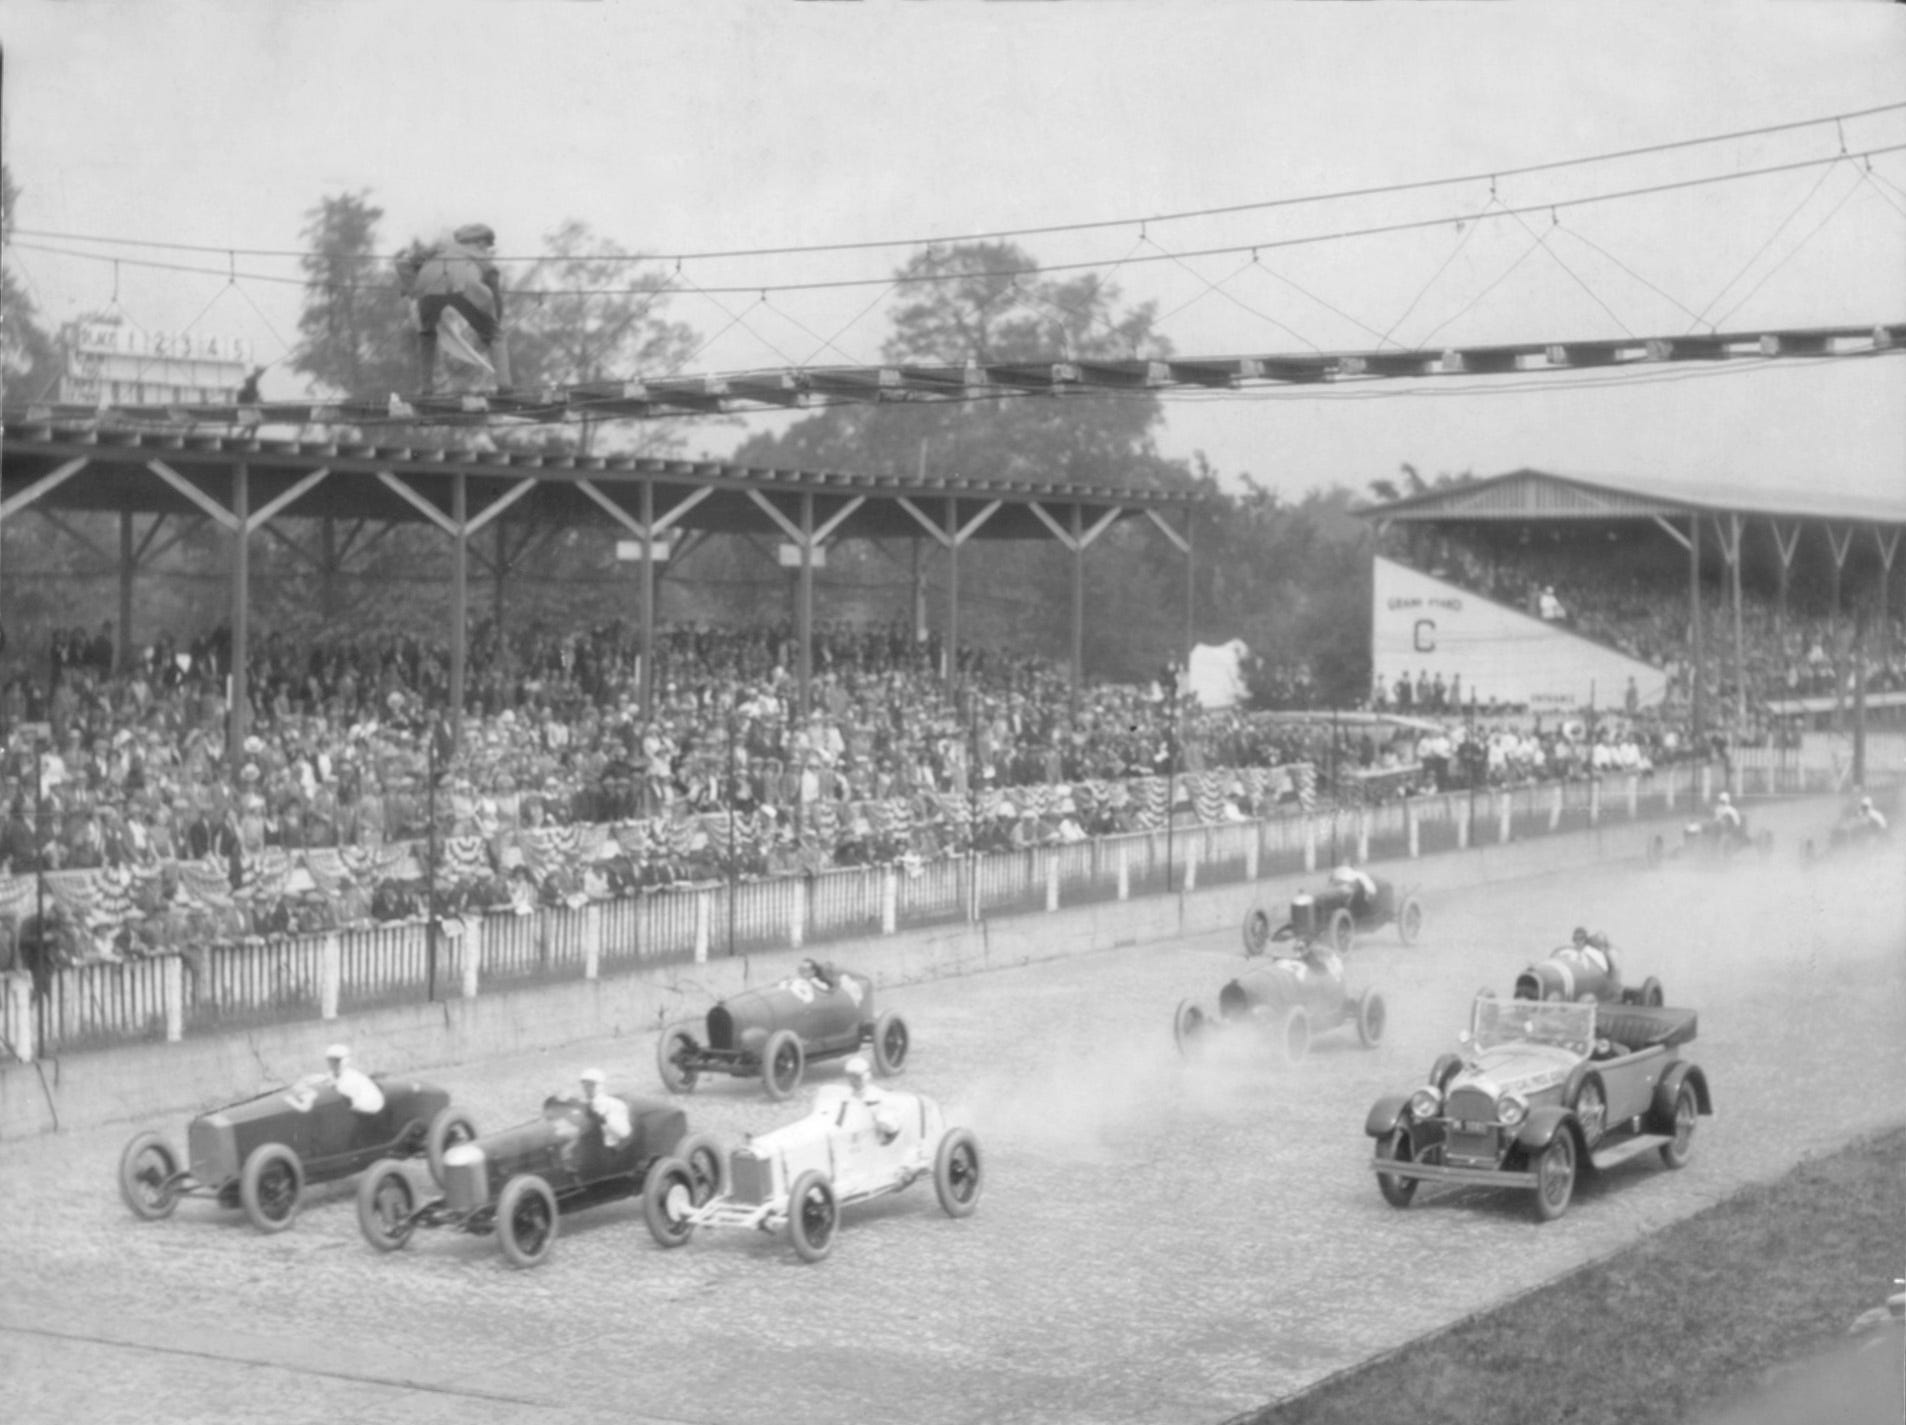 Fred Duesenberg, veteran racing car manufacturer, pulls the pace car to the side of the track as famous war aviator Eddie Rickenbacker (at top) waved the racers away for the flying start of the Indianapolis 500 at 10 a.m. on May 30, 1923. This was the last race where the starter stood on the footbridge strung across the track -- it was replaced the following year by a starter's stand at the side of the straightaway.